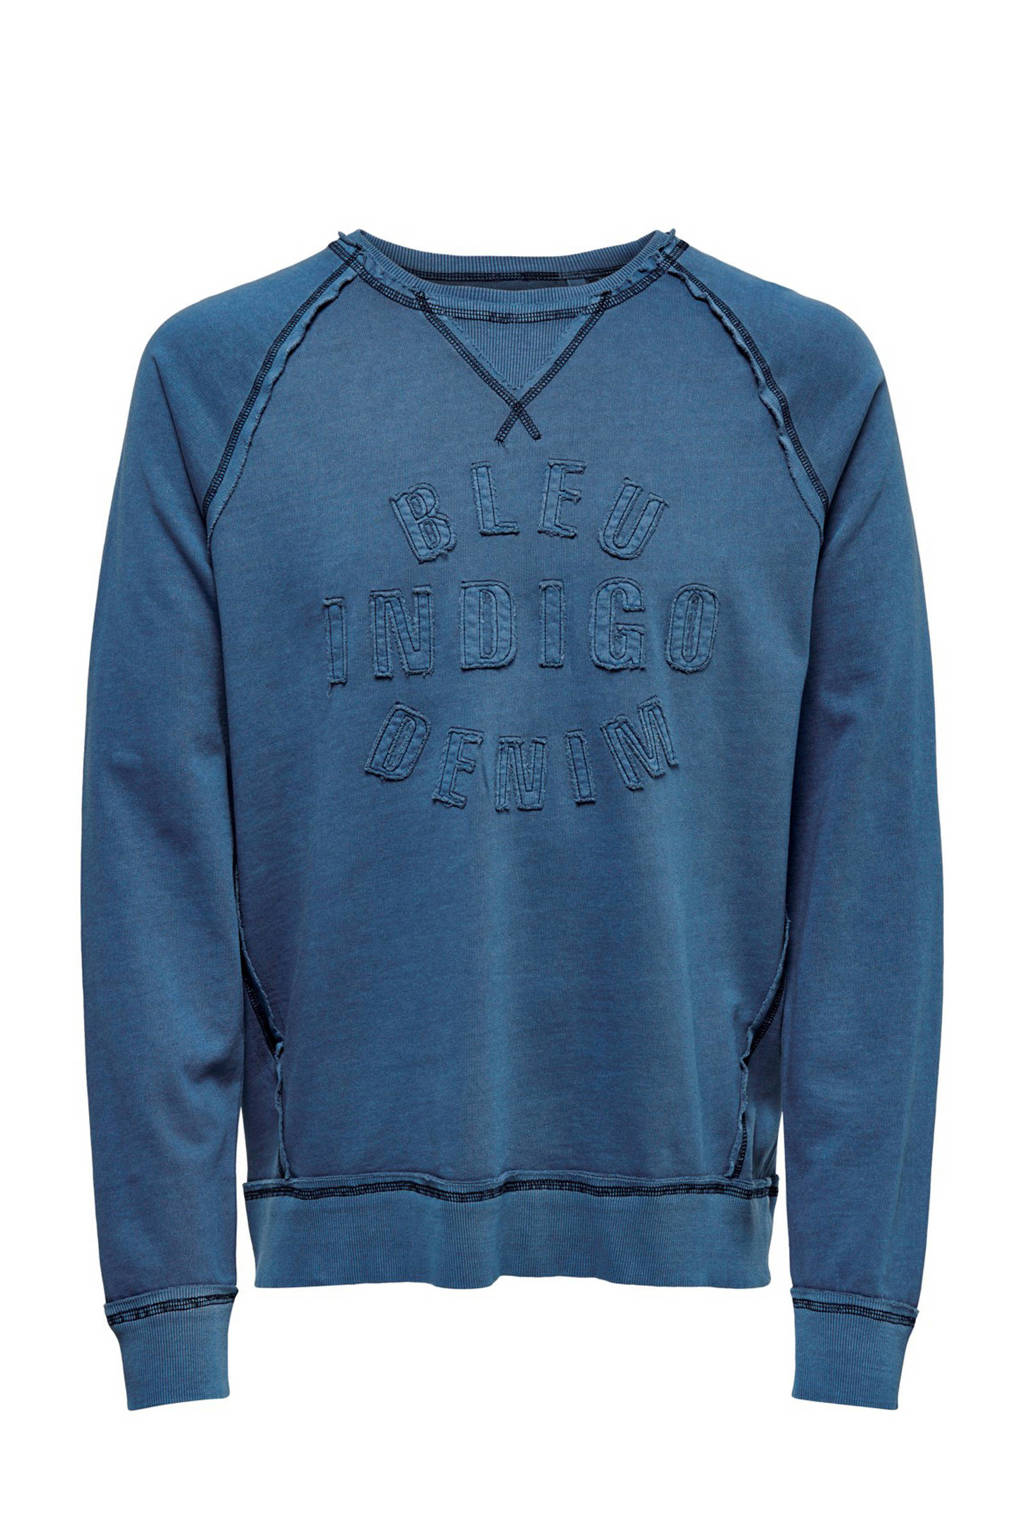 ONLY & SONS sweater met tekst en patches bauw, Bauw